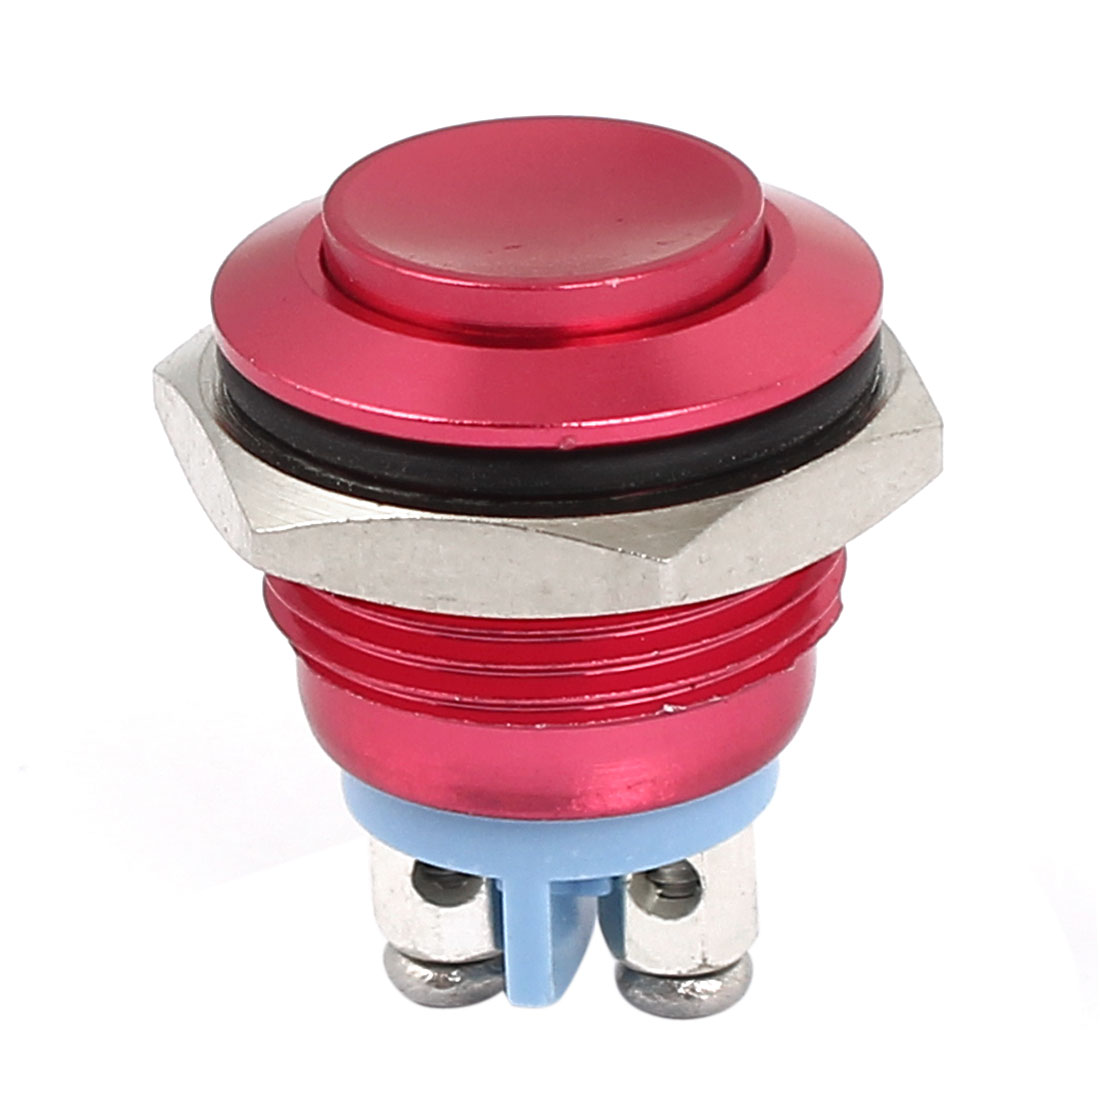 M16 Metal Pushbutton Switch Panel Mount Momentary Type Red Raised Head